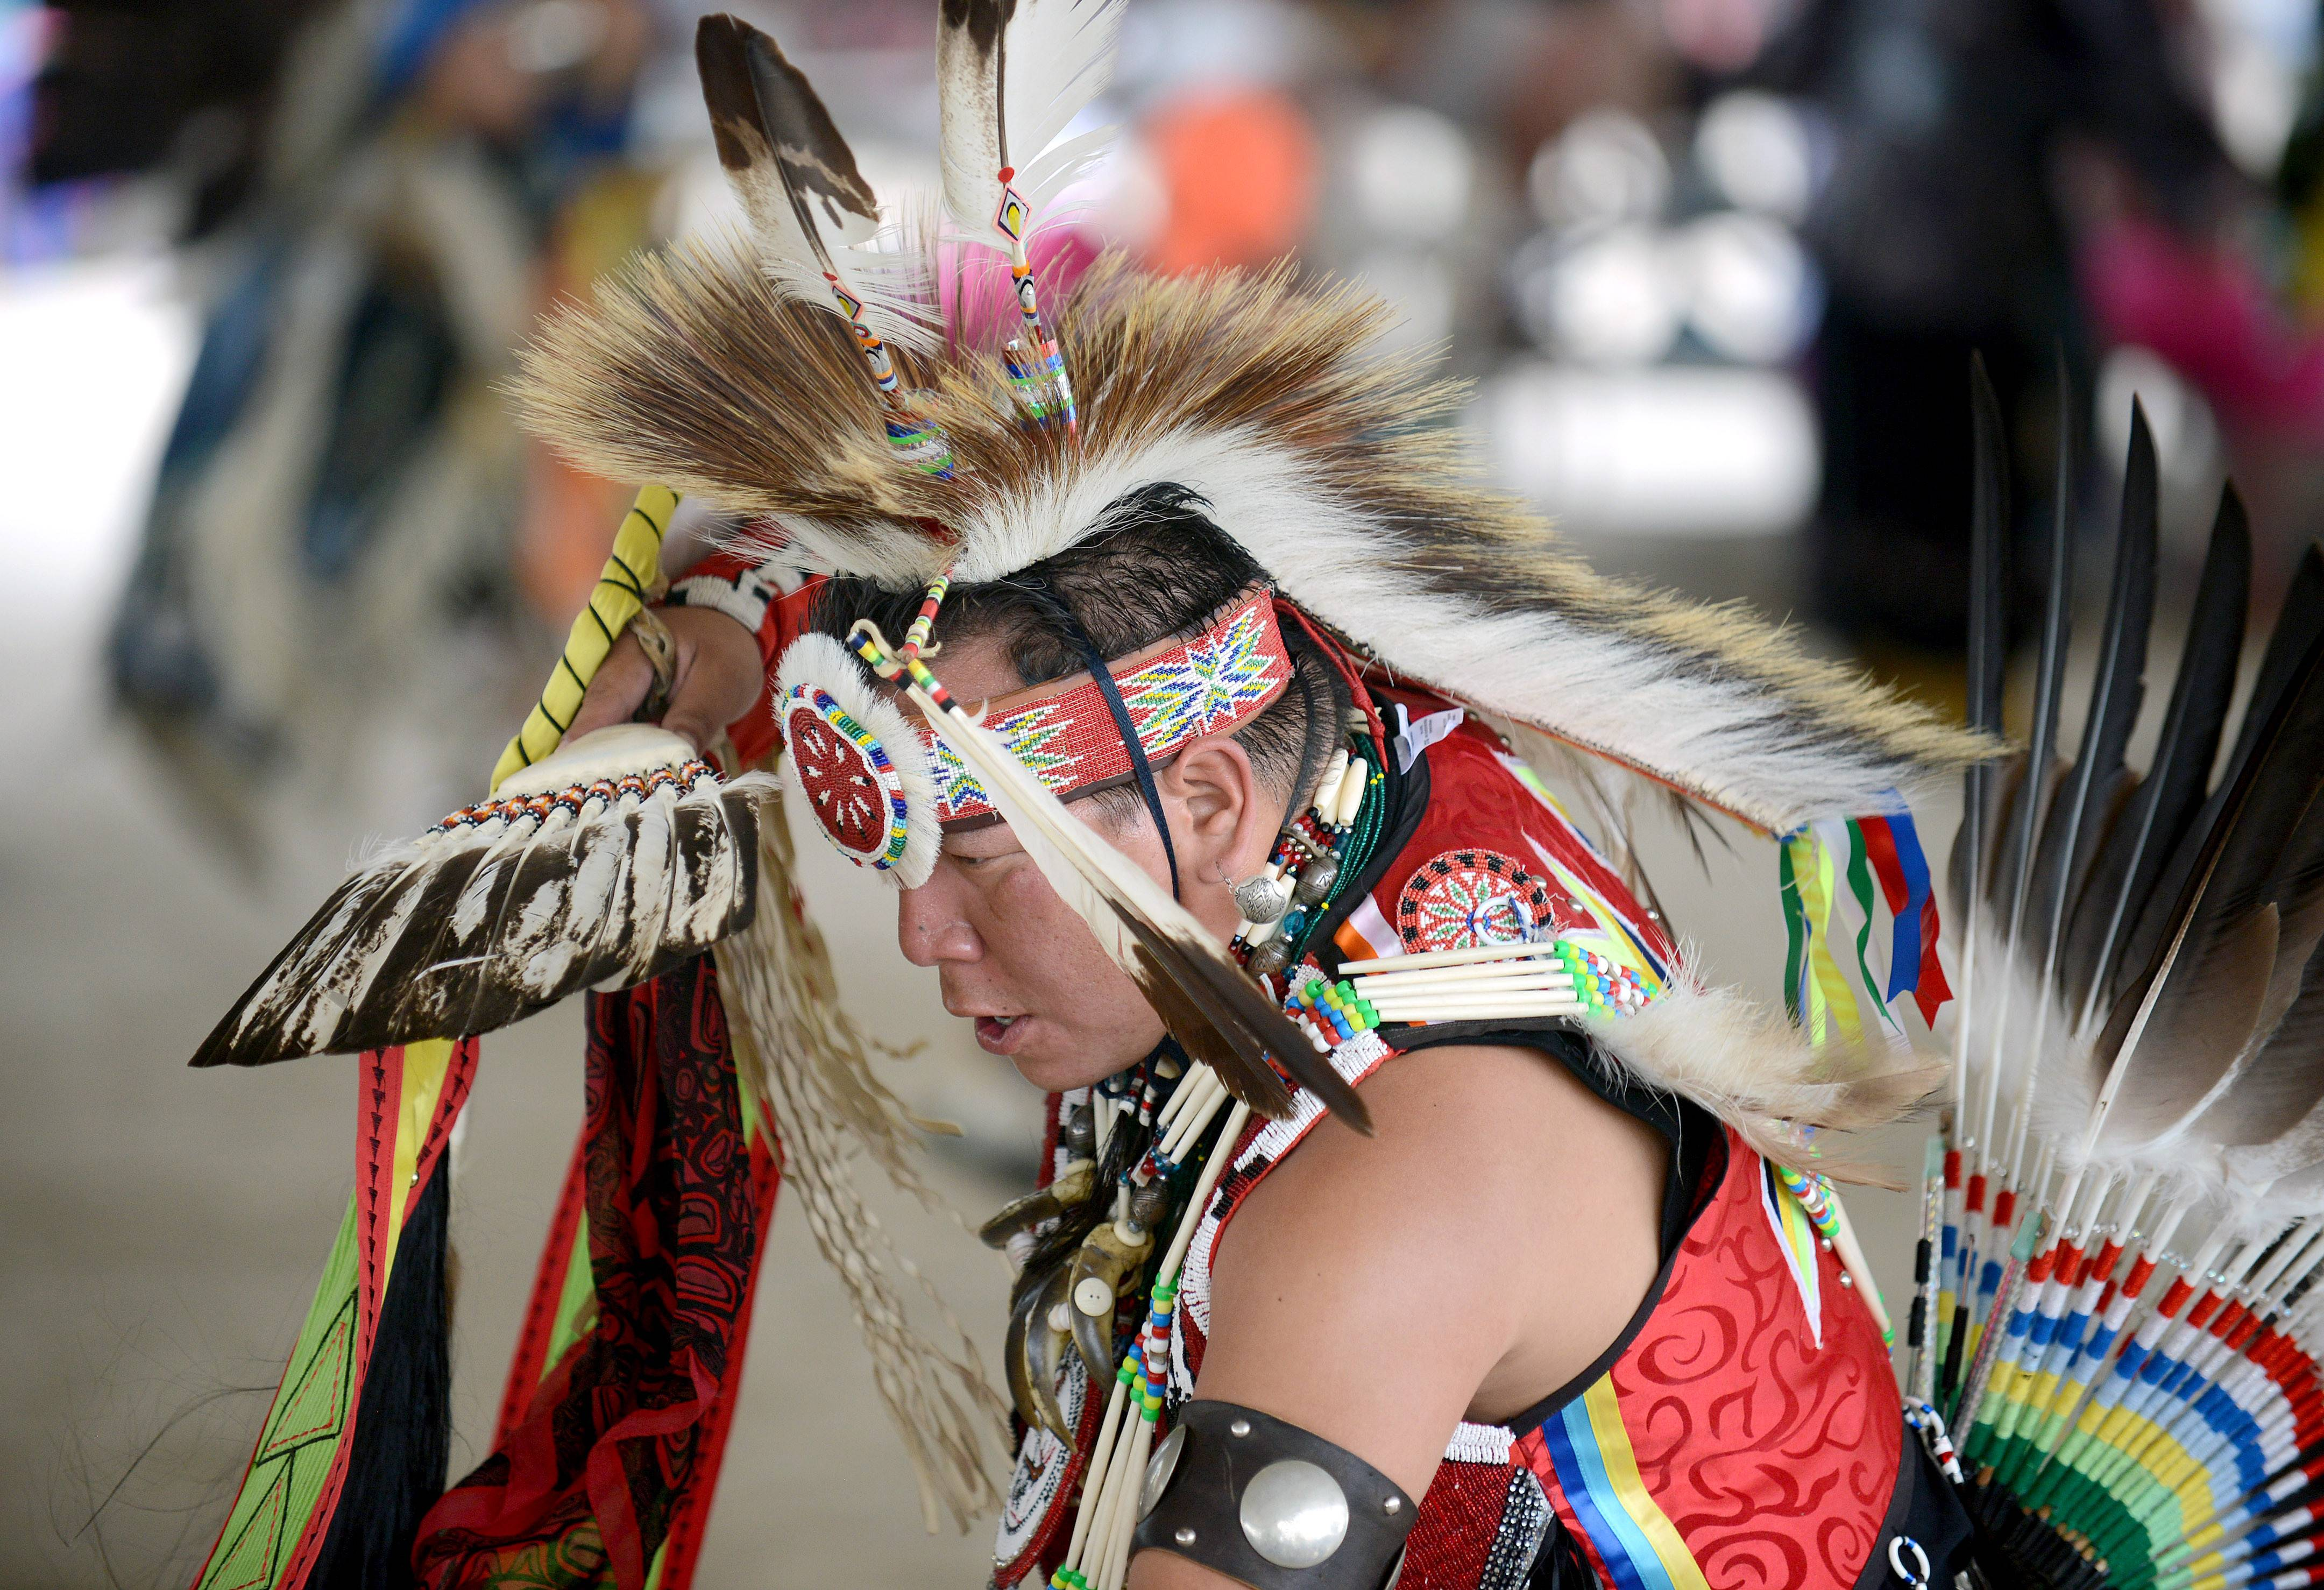 Evan Logan of the Ho-Chunk Nation and Wisconsin Dells, Wis., dances during the Pow Wow at the Festival of the Horse and Drum at the Kane County Fairgrounds in St. Charles Saturday. He has been dancing for about 35 years.